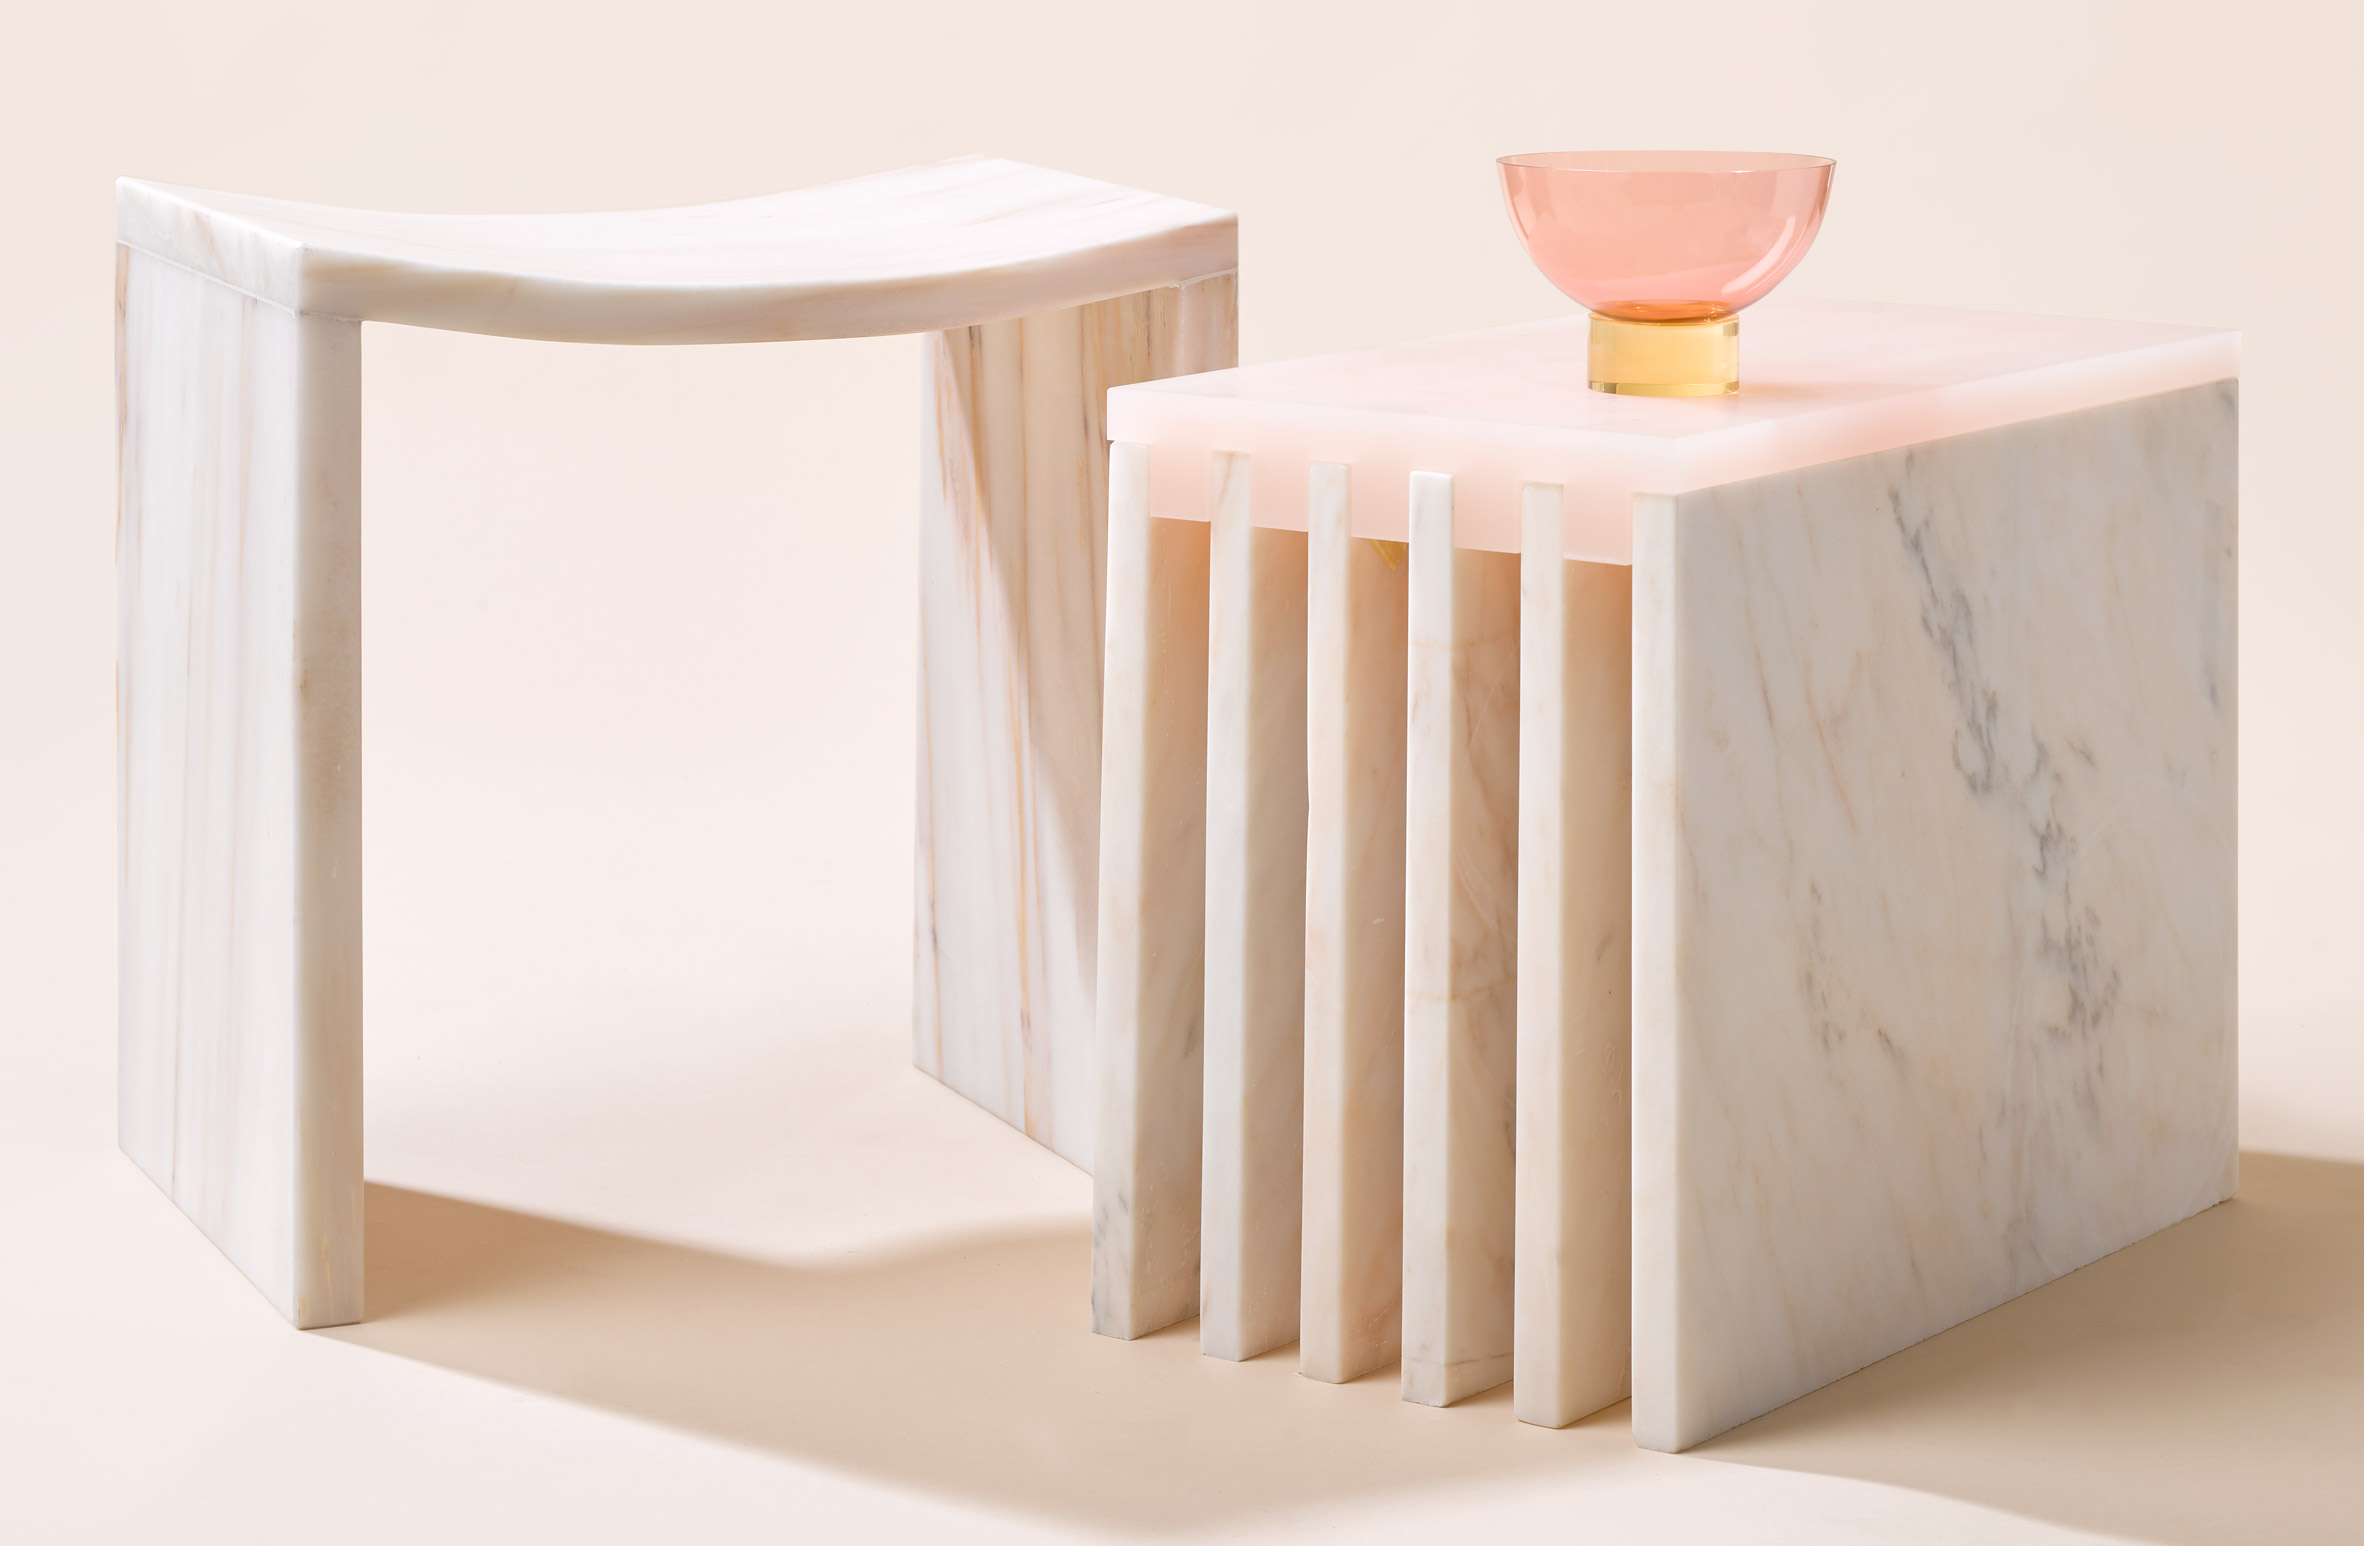 Objects of Common Interest presents homeware based on classical geometries